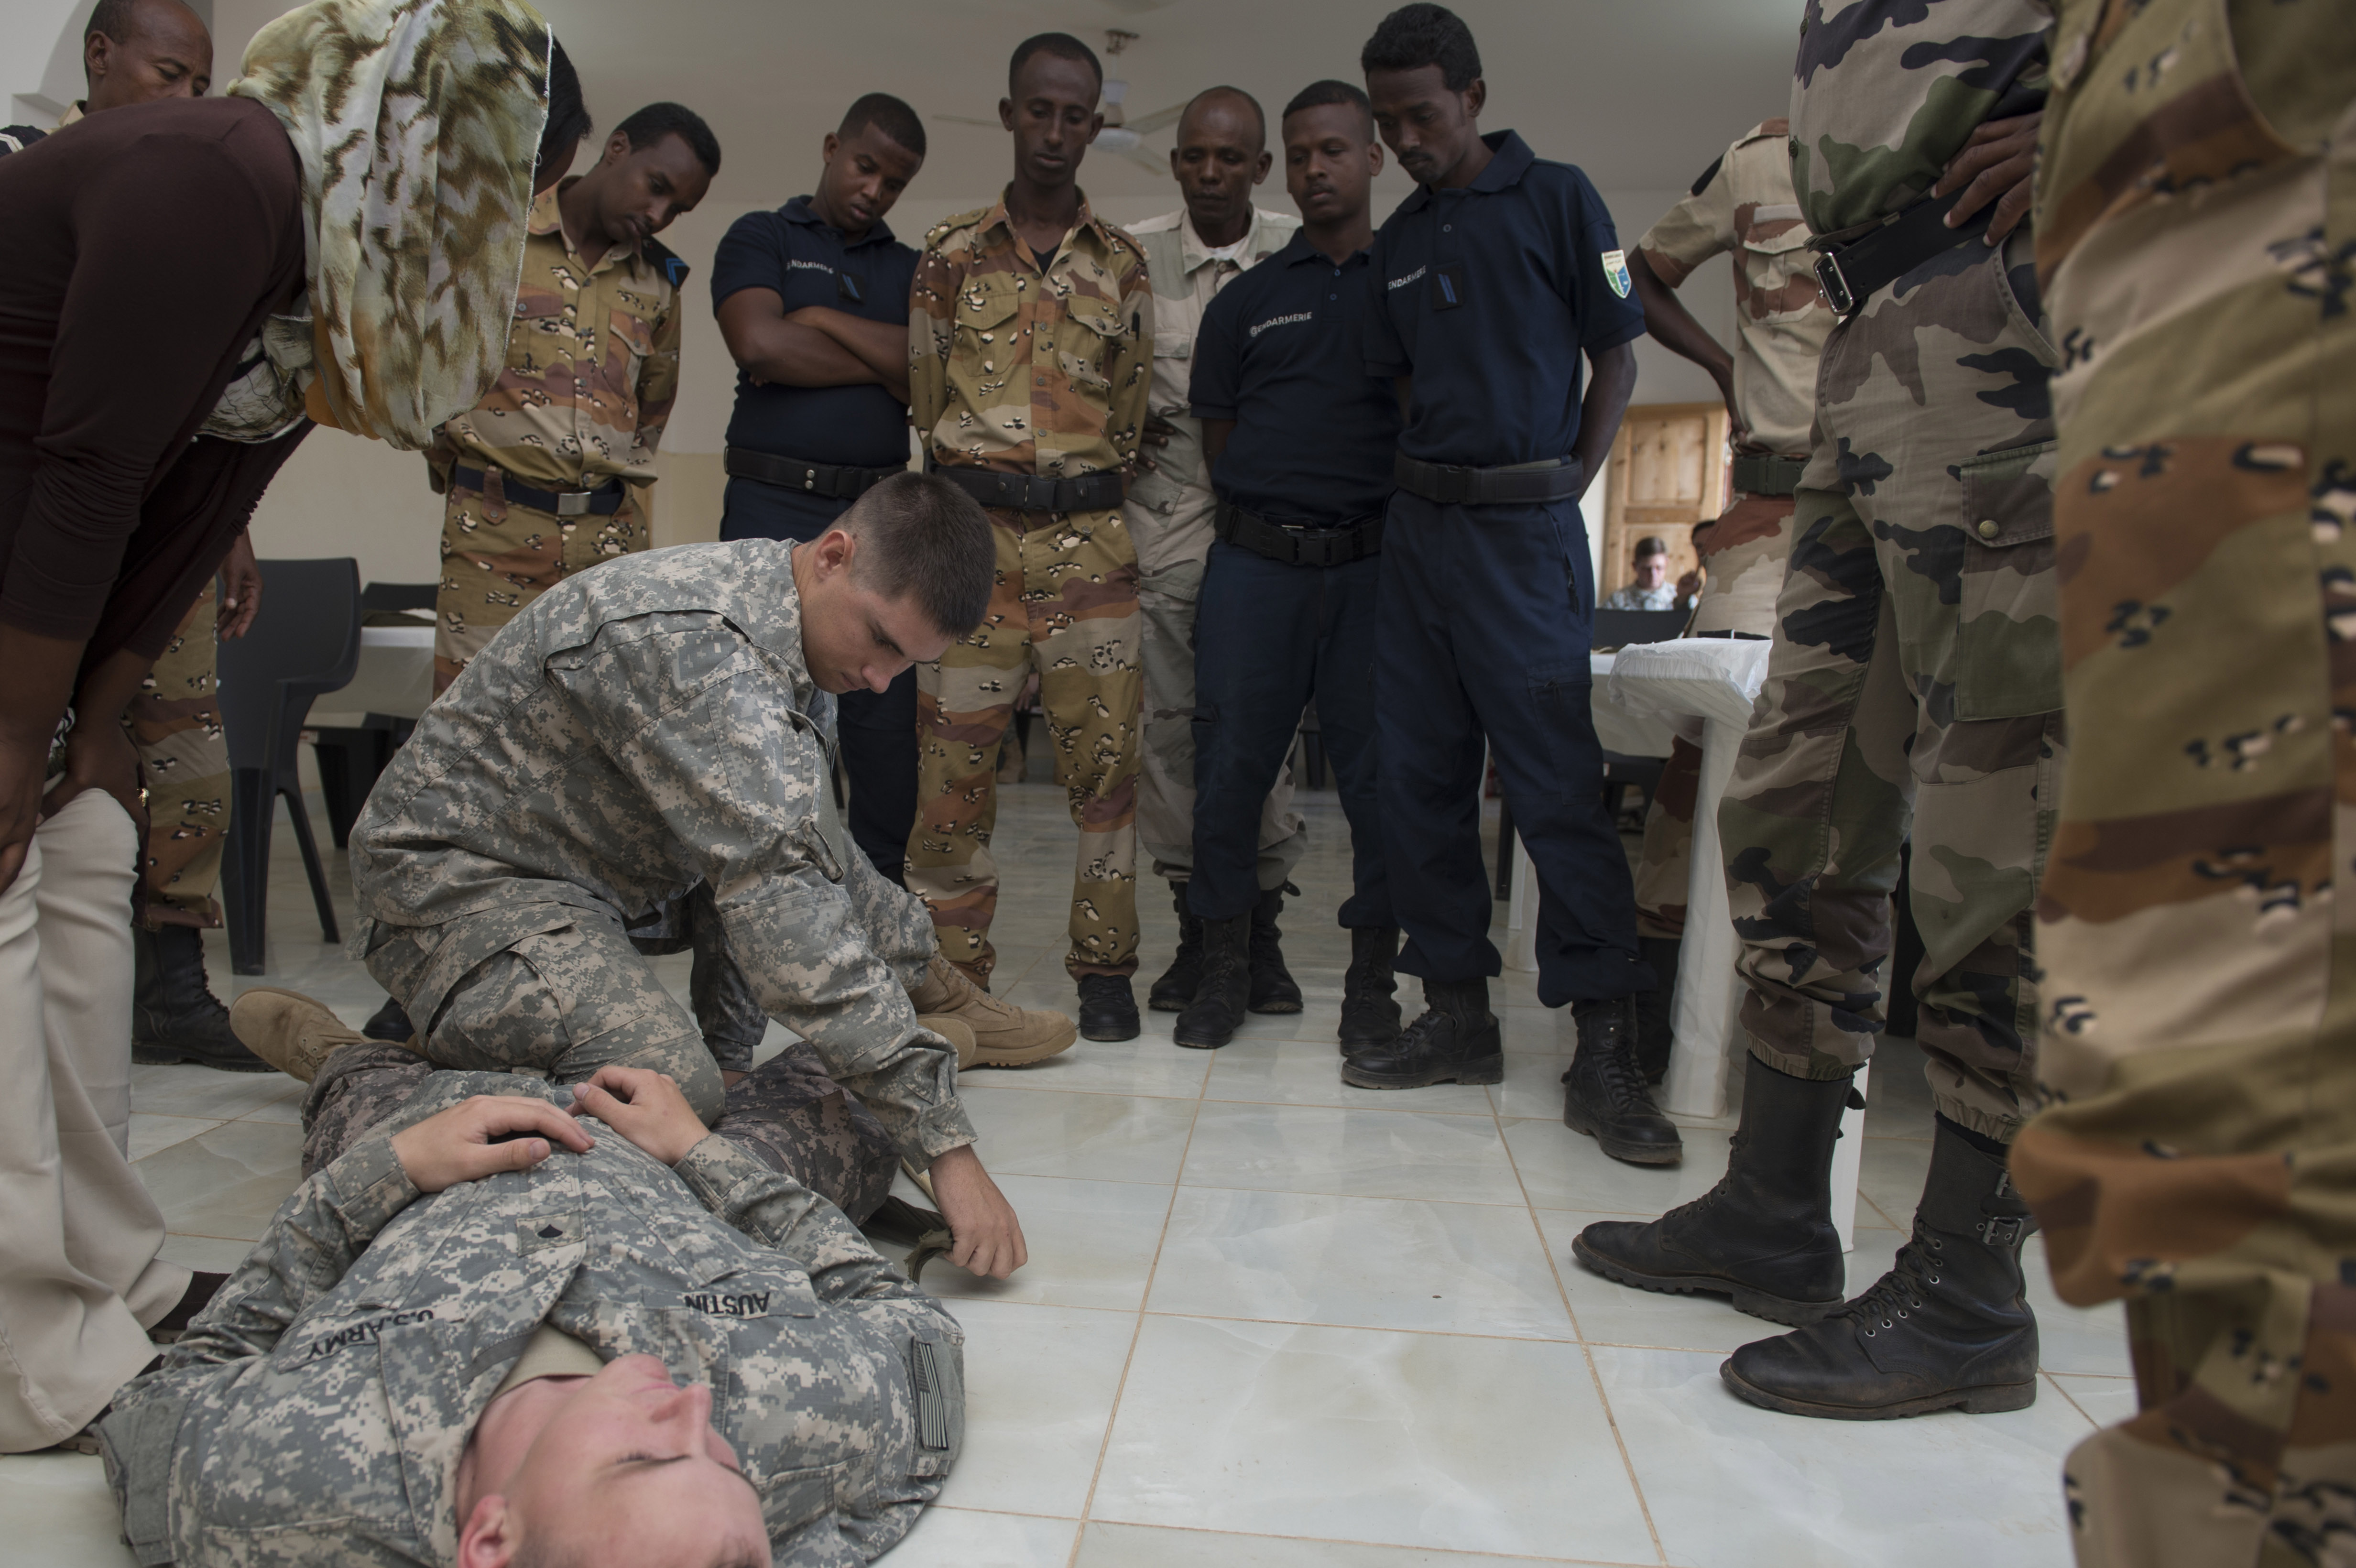 Specialist Dillion Flowers, 1-77 Armored Regiment health care specialist, demonstrates the way the U.S. Army trains to apply a tourniquet to the Djibouti Gendarmerie, during the First Aid Best Practice Exchange between, the Djibouti Gendarmerie, 404th and 407th Civil Affairs Battalions and the 1-77 Armored Regiment health care specialists in Cheik Moussa, Djibouti, Apr. 4, 2015. (U.S. Air Force Photos by Staff Sgt. Carlin Leslie)